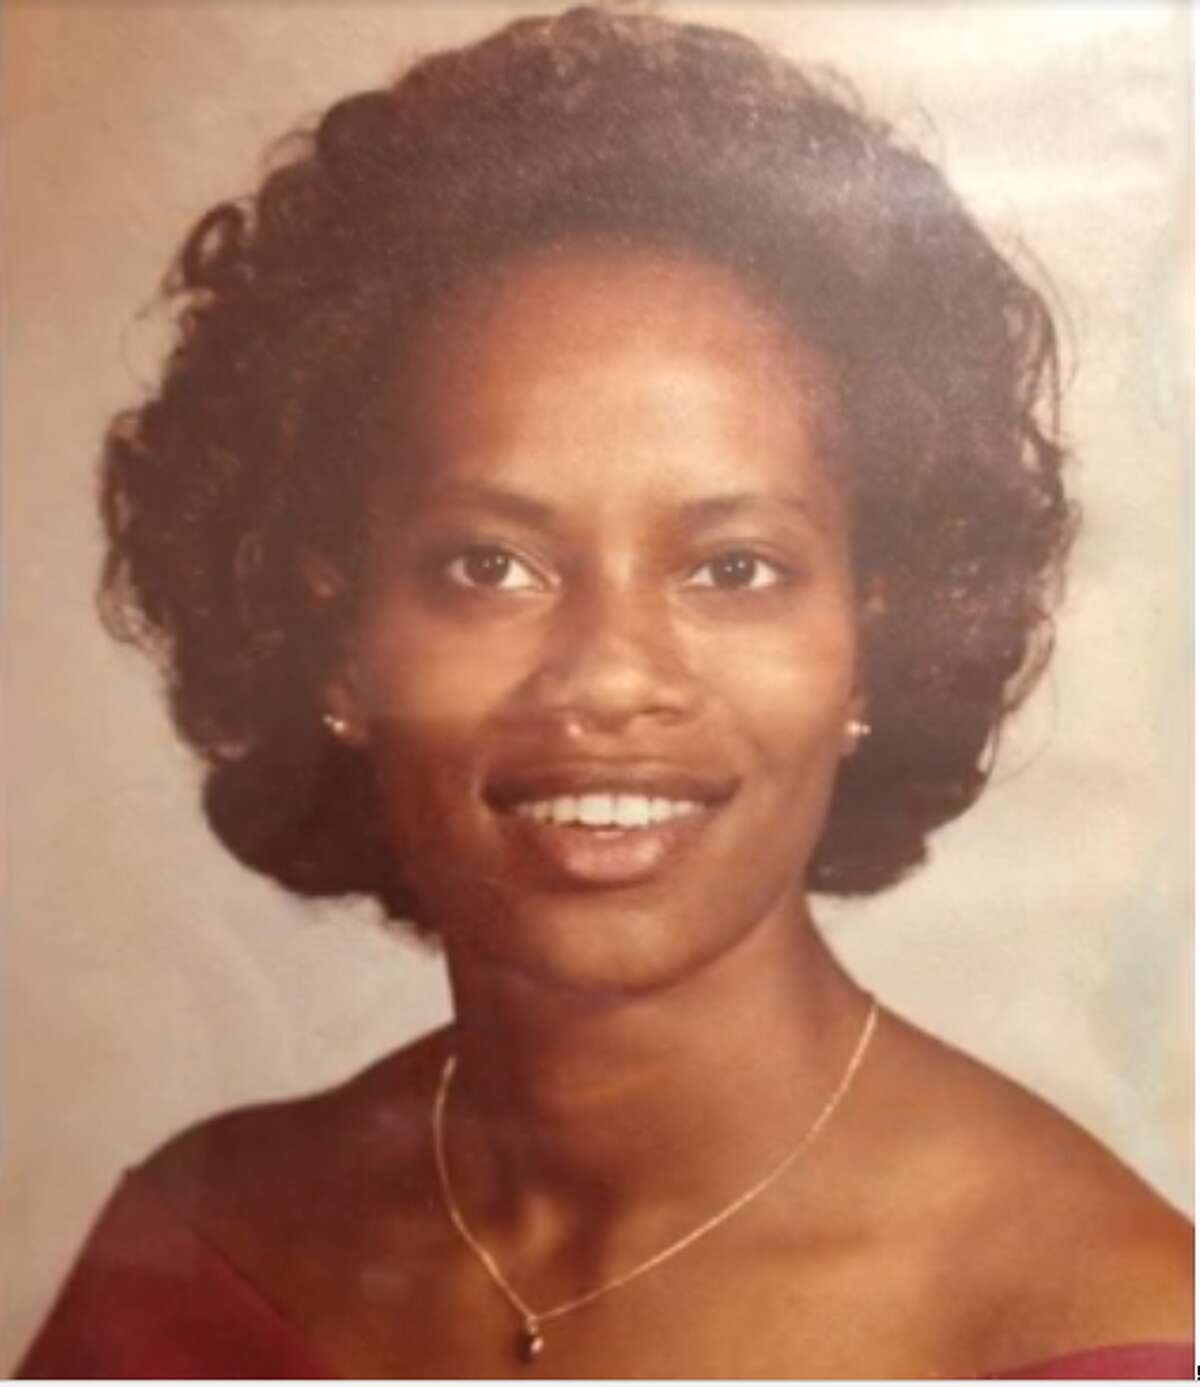 Clarissa Collins, a military veteran from Albany who served in the first Gulf War, graduated from Bishop Maginn High School in 1979. (Contributed photo)